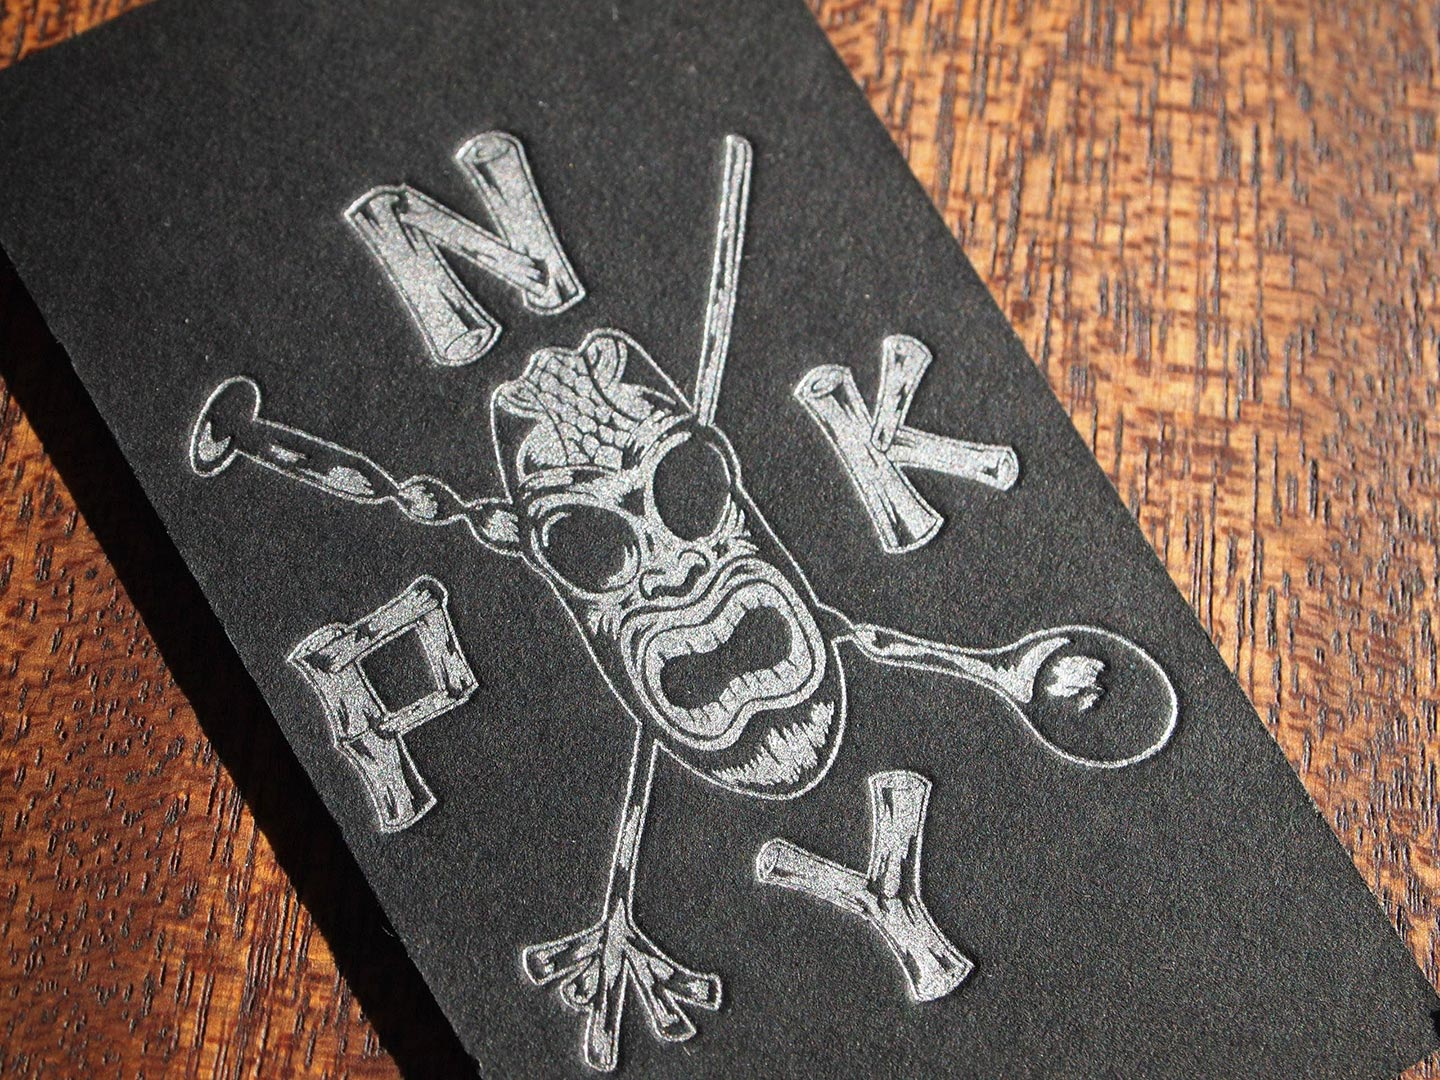 PKNY (Painkiller) tiki bar business cards